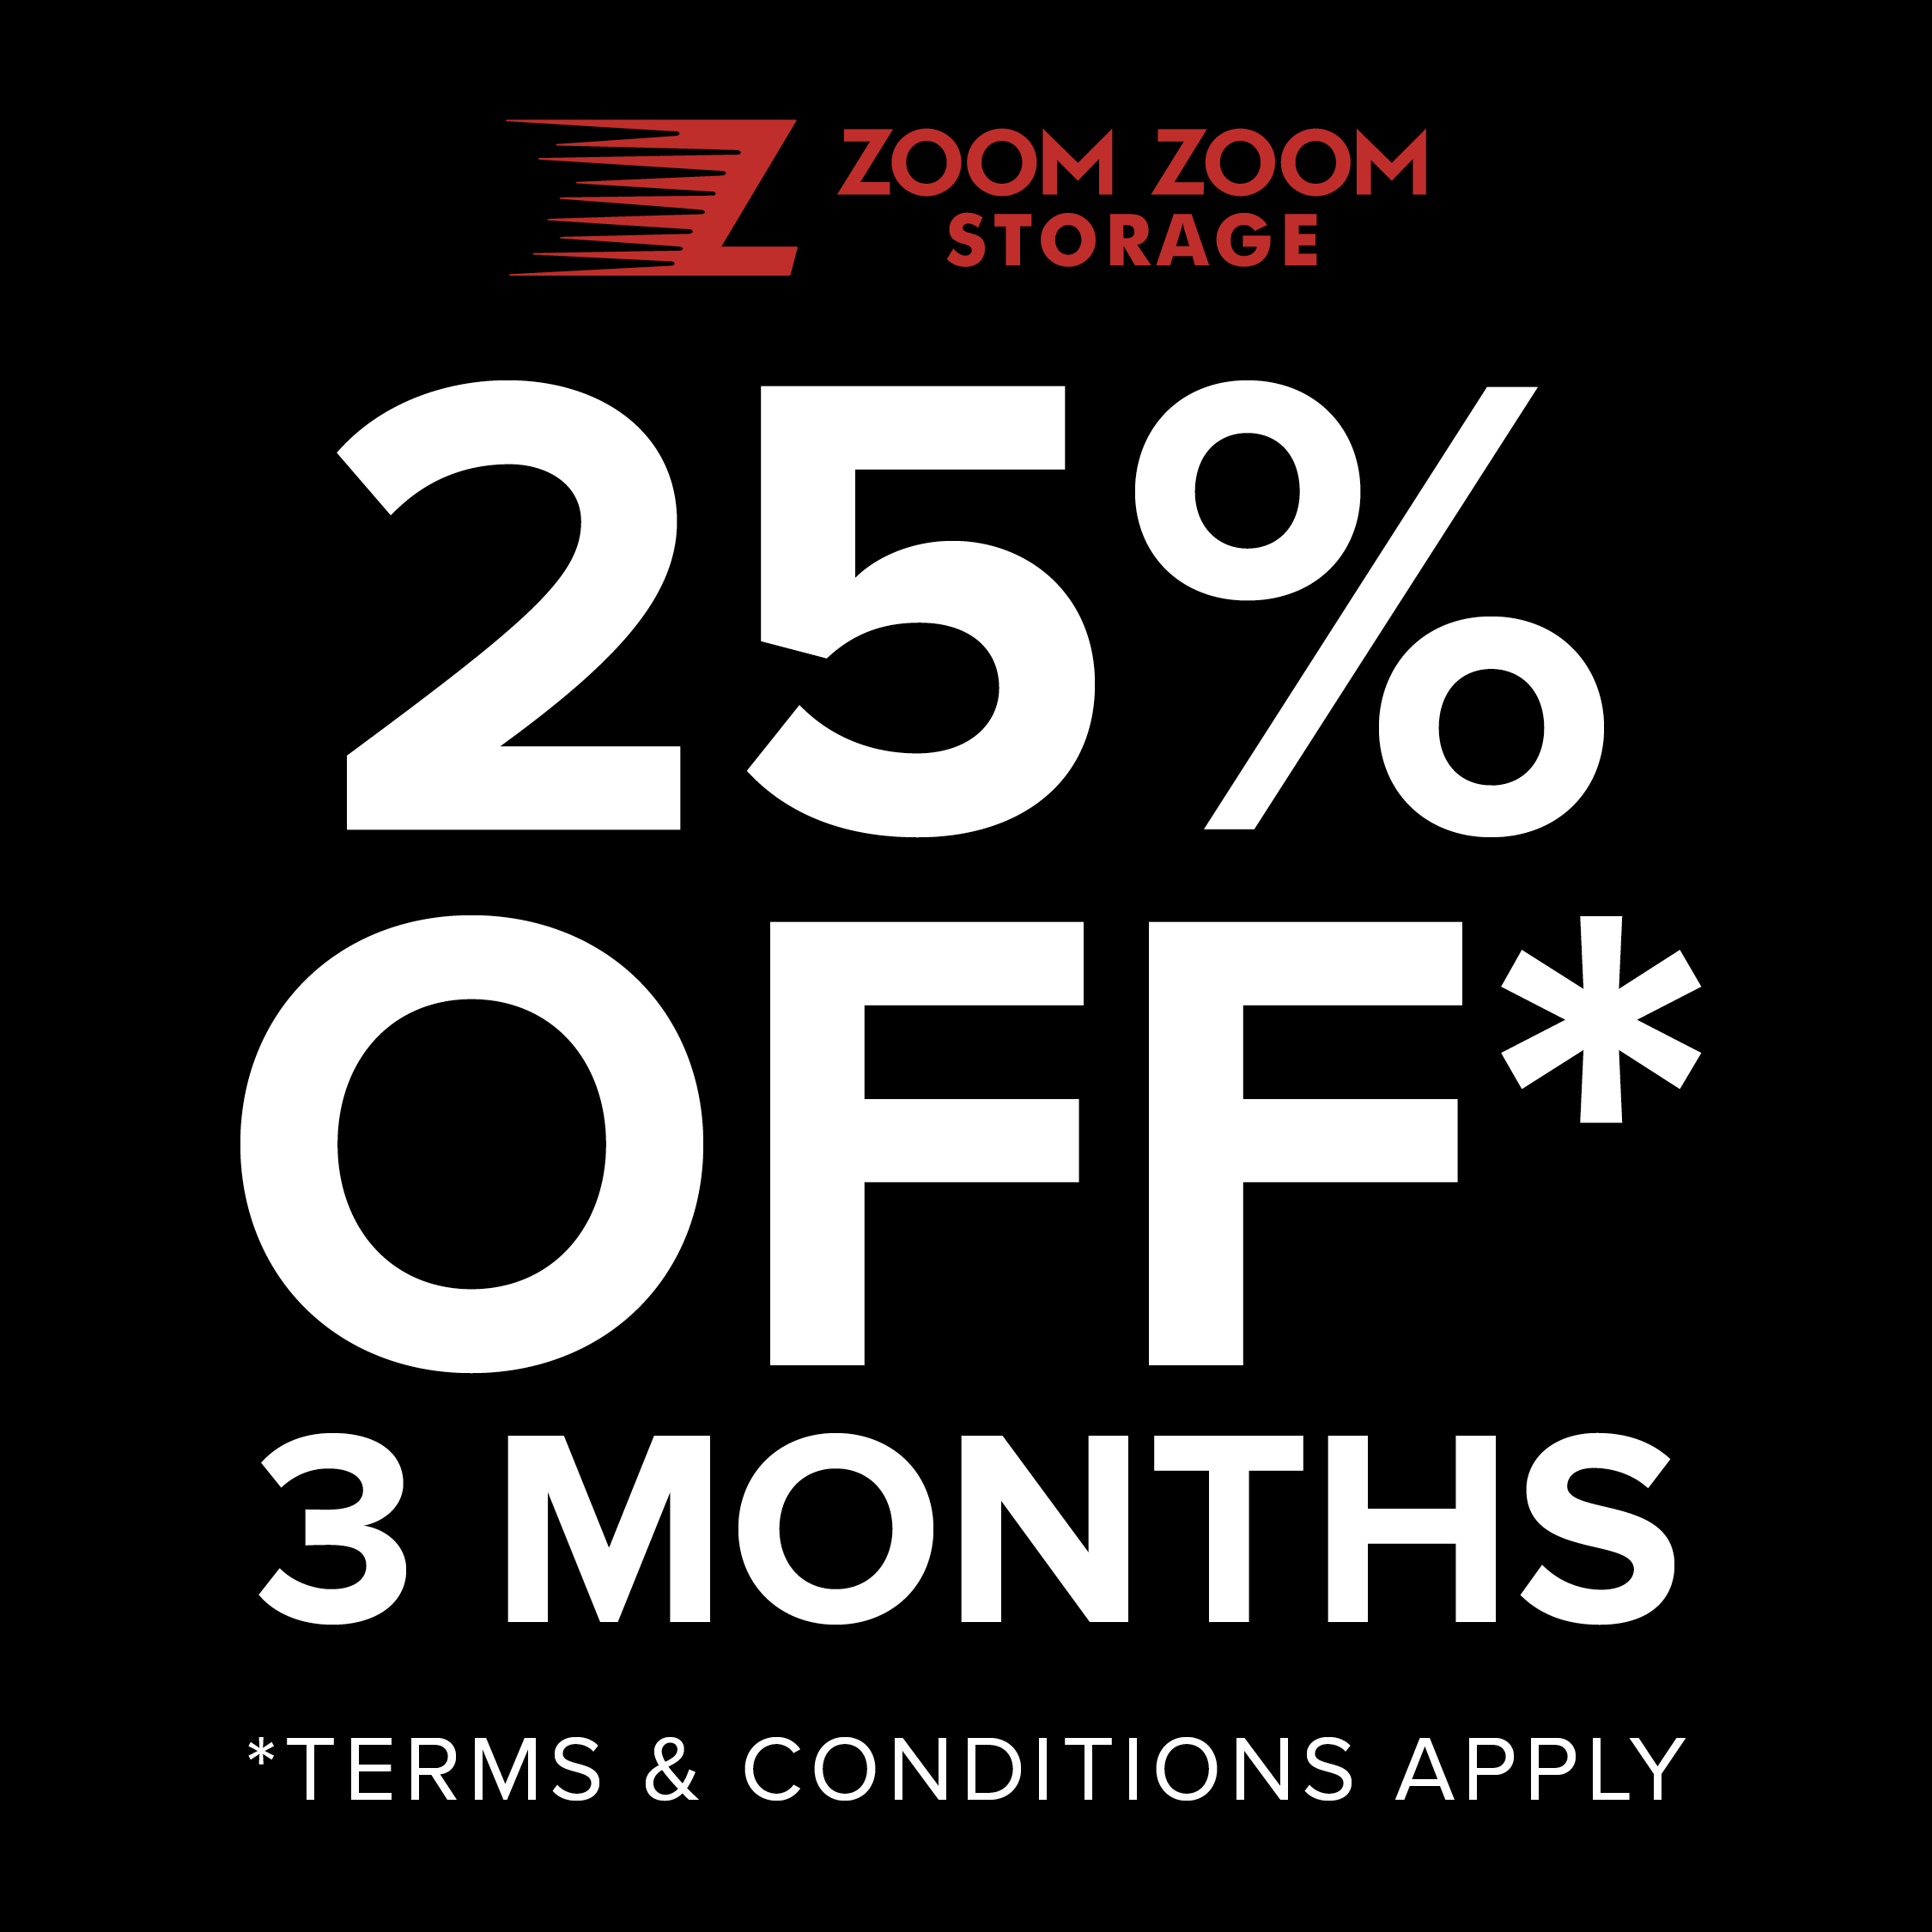 25% OFF for 3 Months